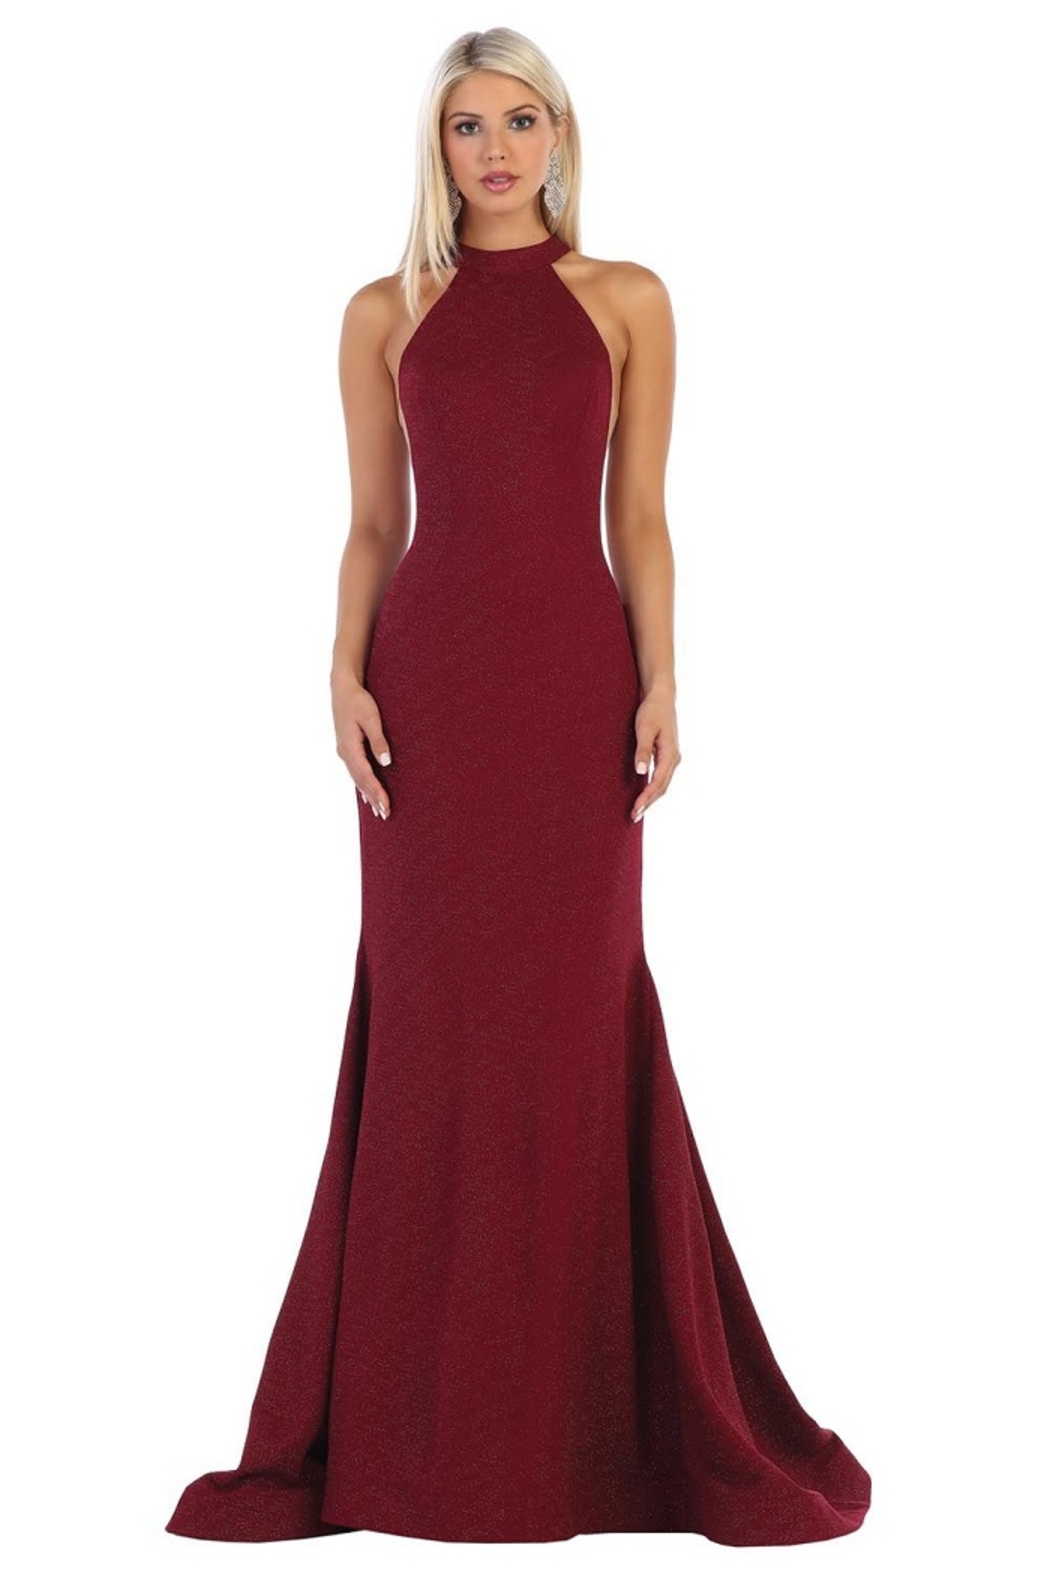 May Queen  Burgundy Halter Fit & Flare Formal Long Dress - Main Image